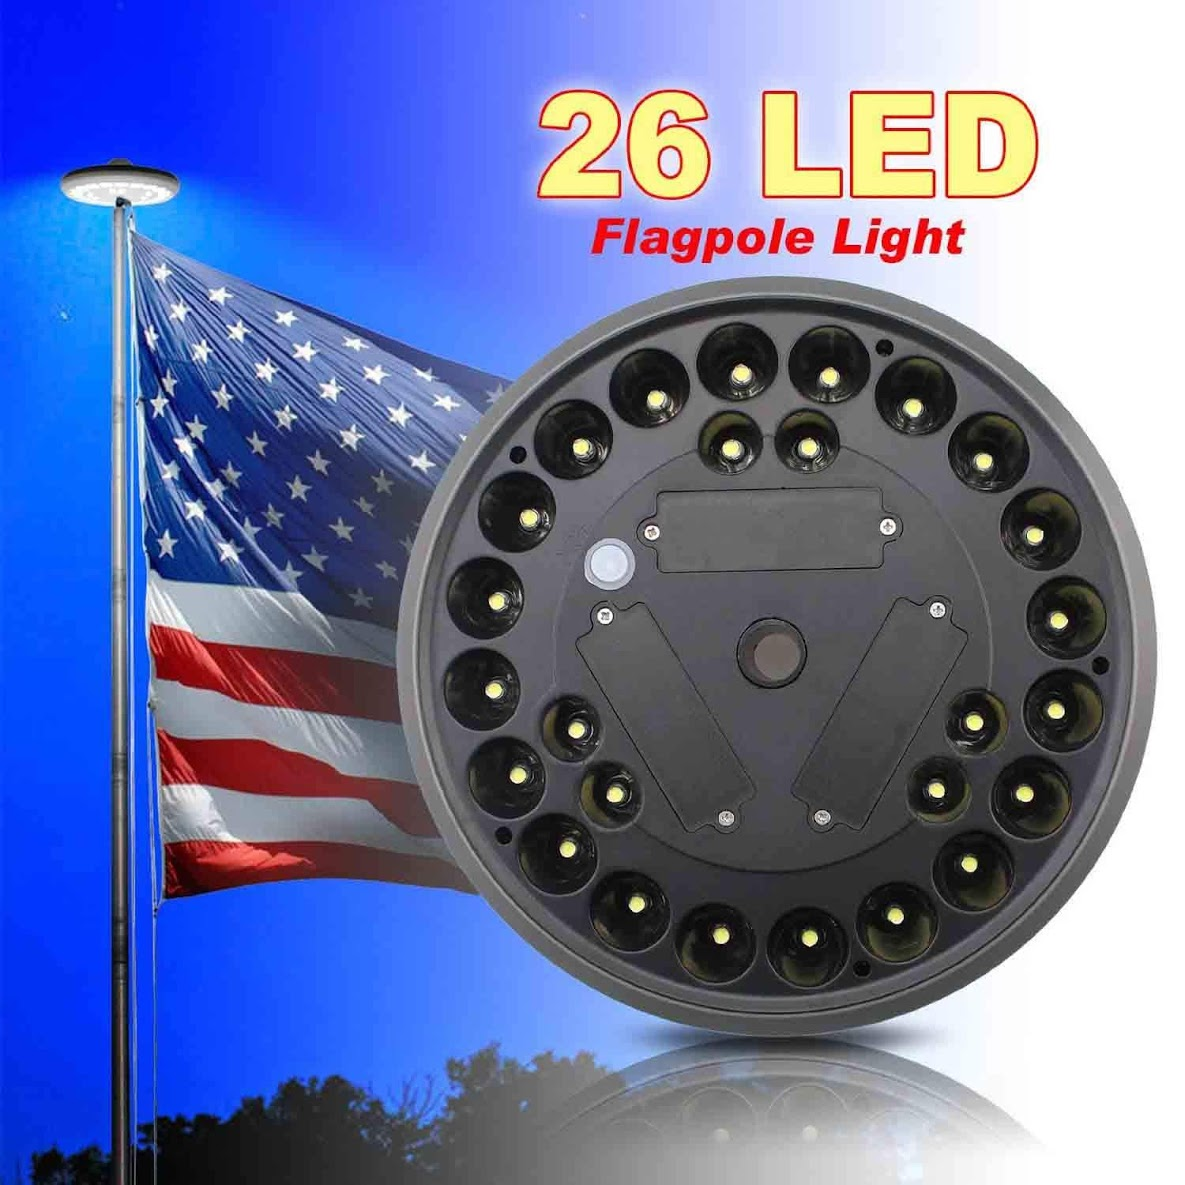 2018 Thanksgiving,26 LED Solar Power Flag Pole Flagpole Light, Technology Super Bright Downlight Light, Brightest and Long-lasting for 15 to 25 Feet Flag Night